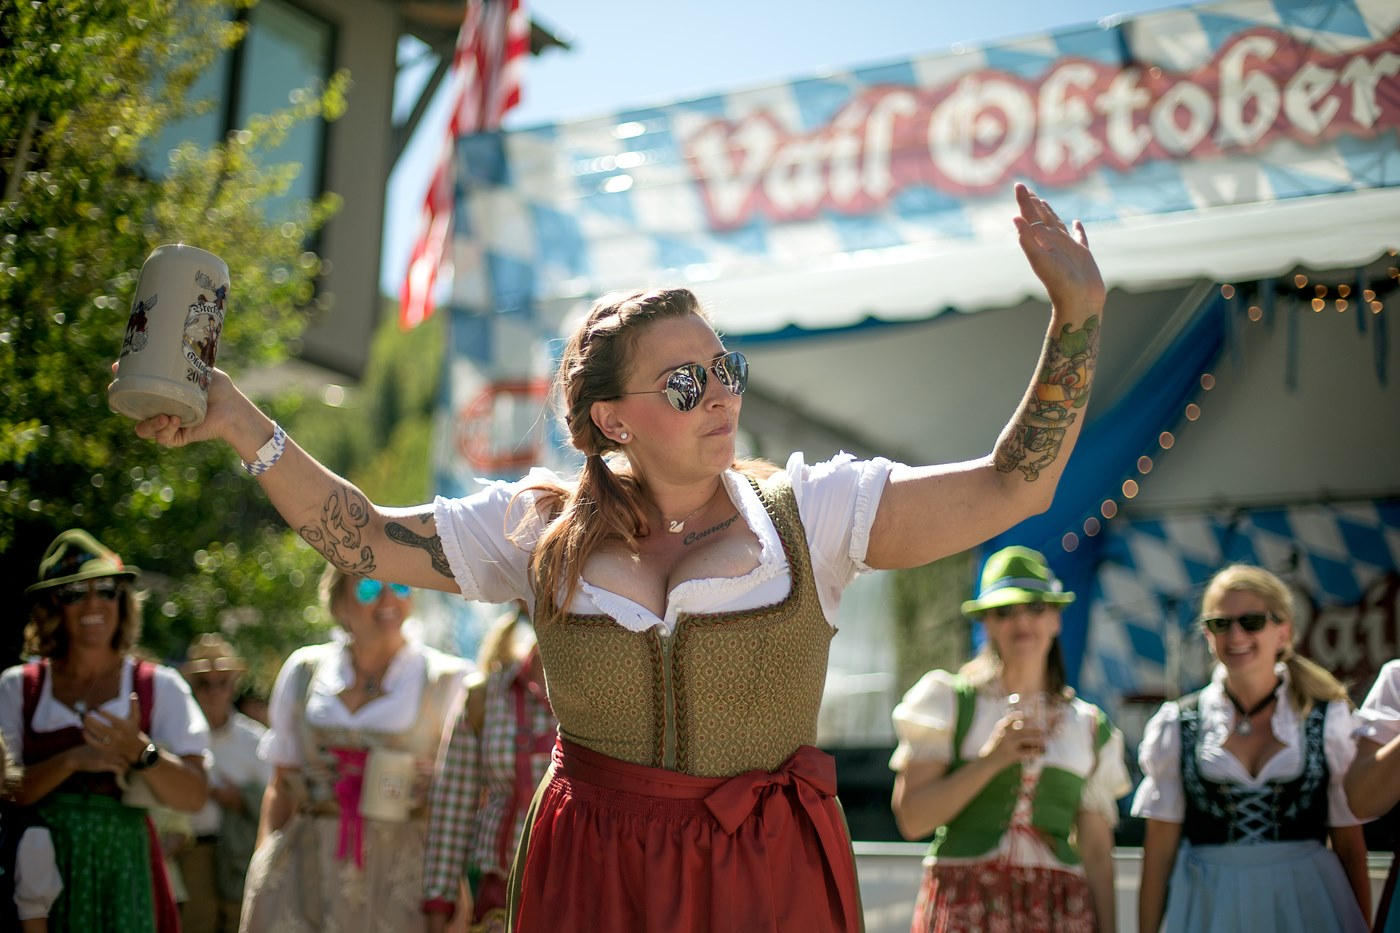 Image of a woman at Vail Oktoberfest in Vail, Colorado